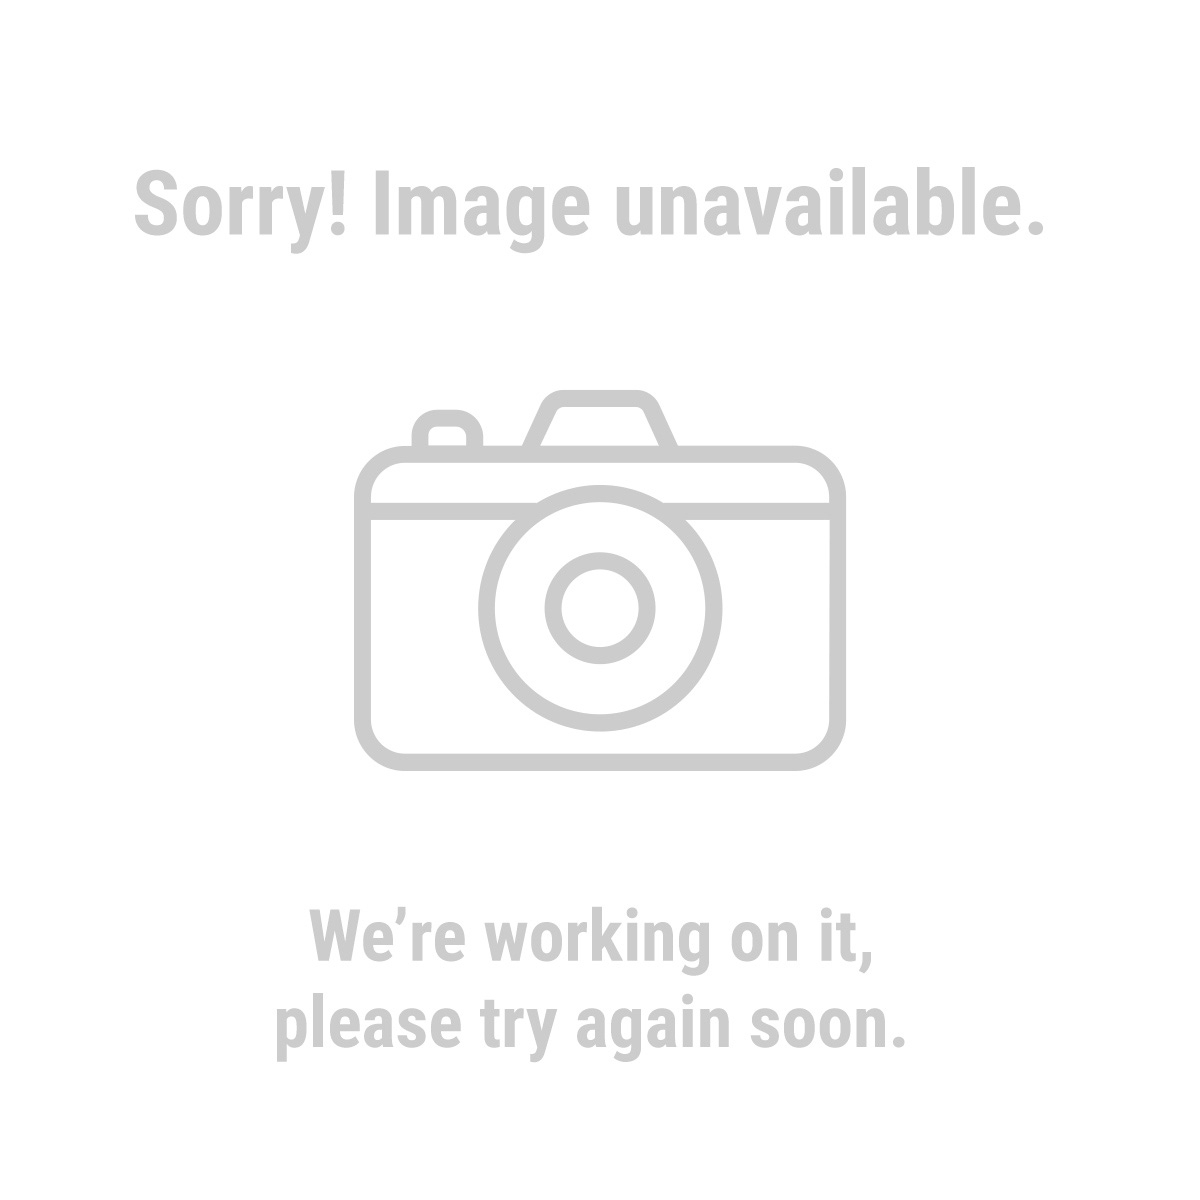 HFT® 69191 24 ft. 10 in. x 39 ft. 4 in. All Purpose Weather Resistant Tarp